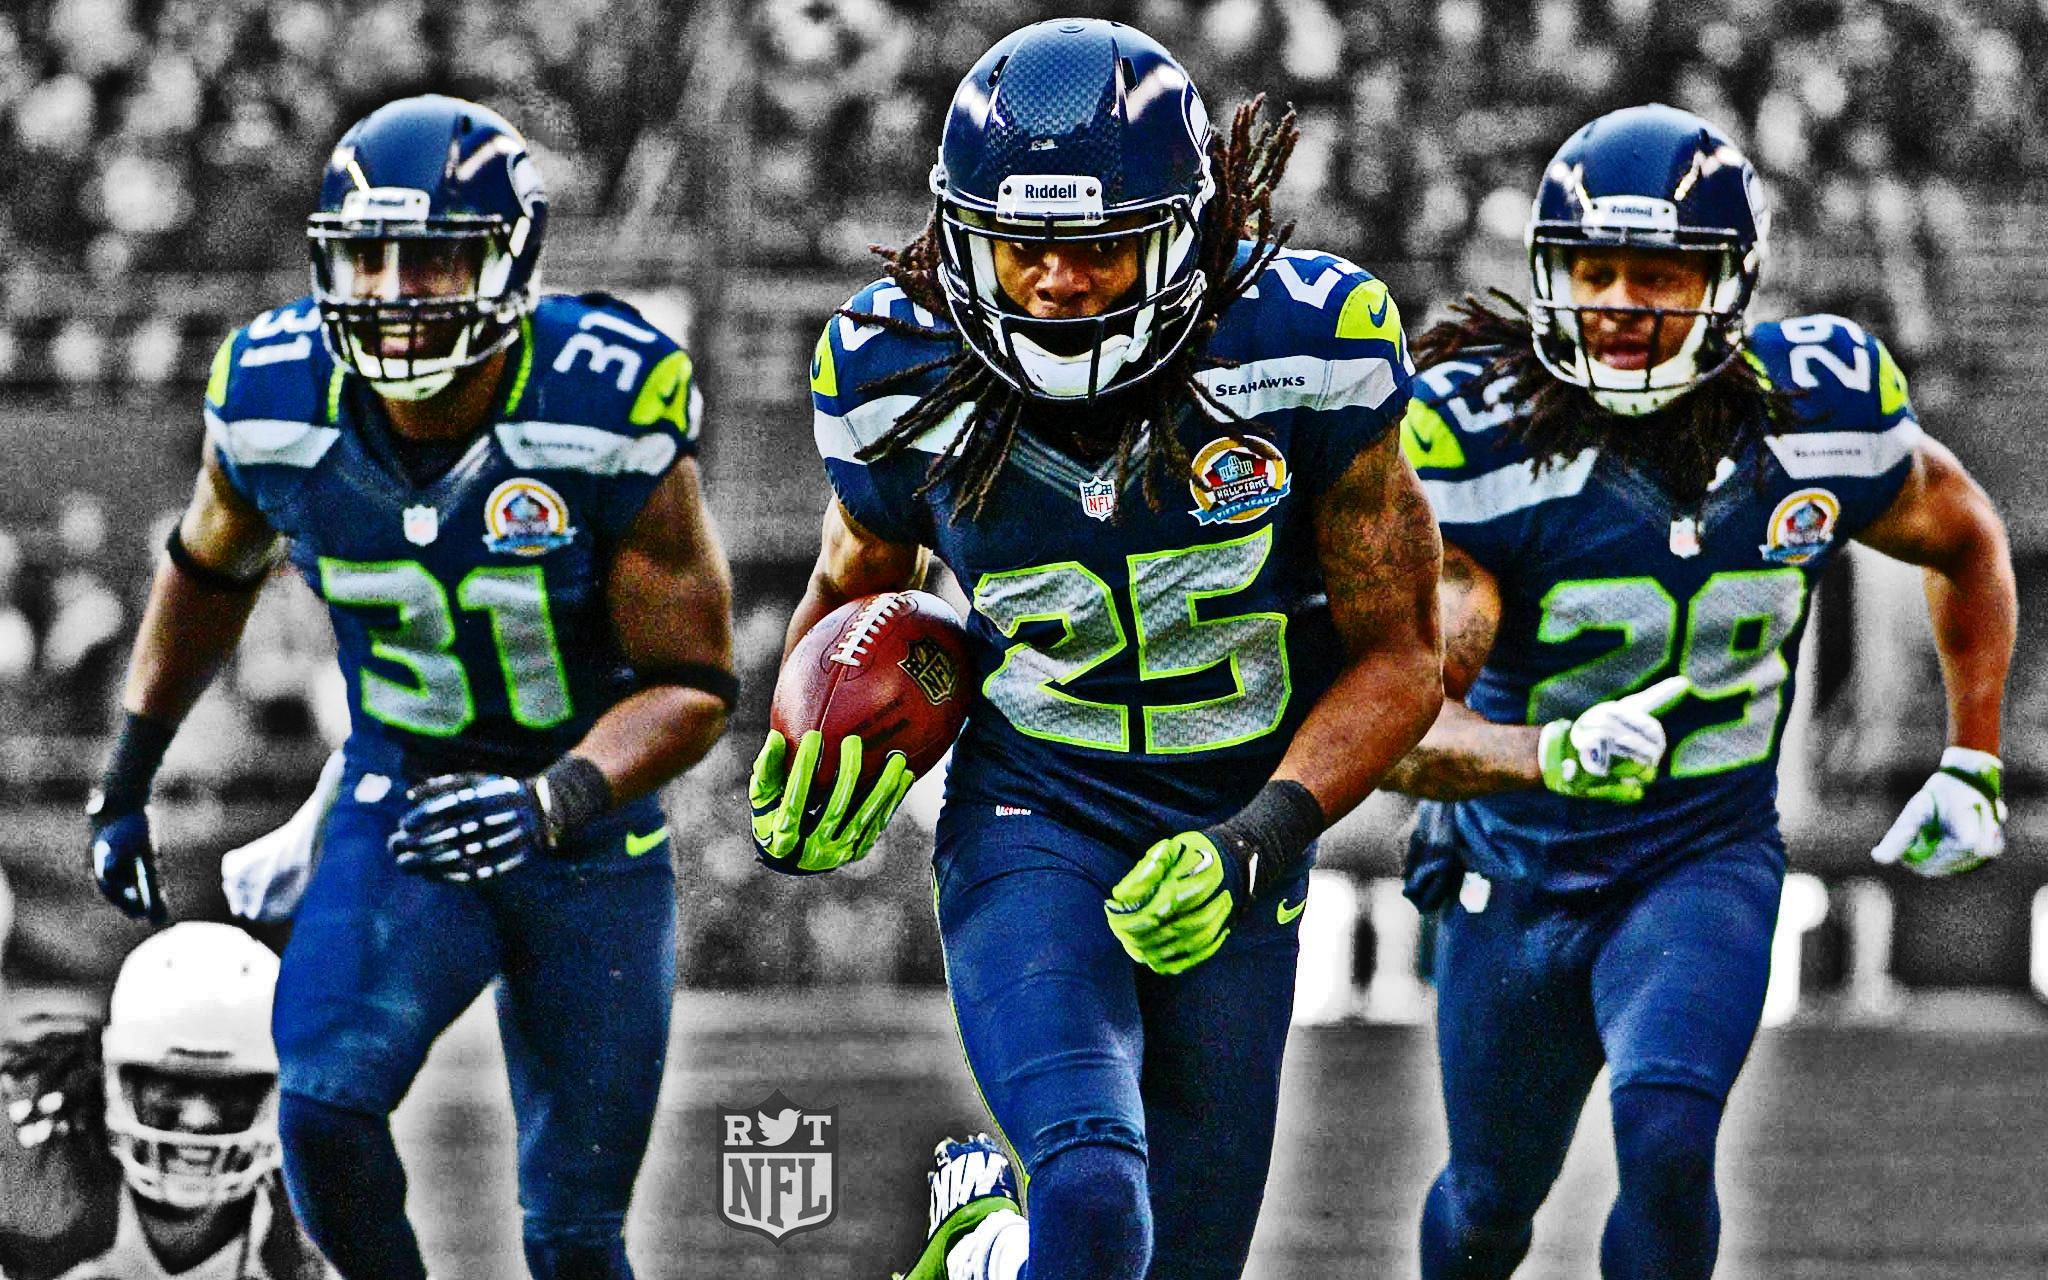 Seattle Seahawks Computer Wallpapers Desktop Backgrounds 2048x1280 2048x1280